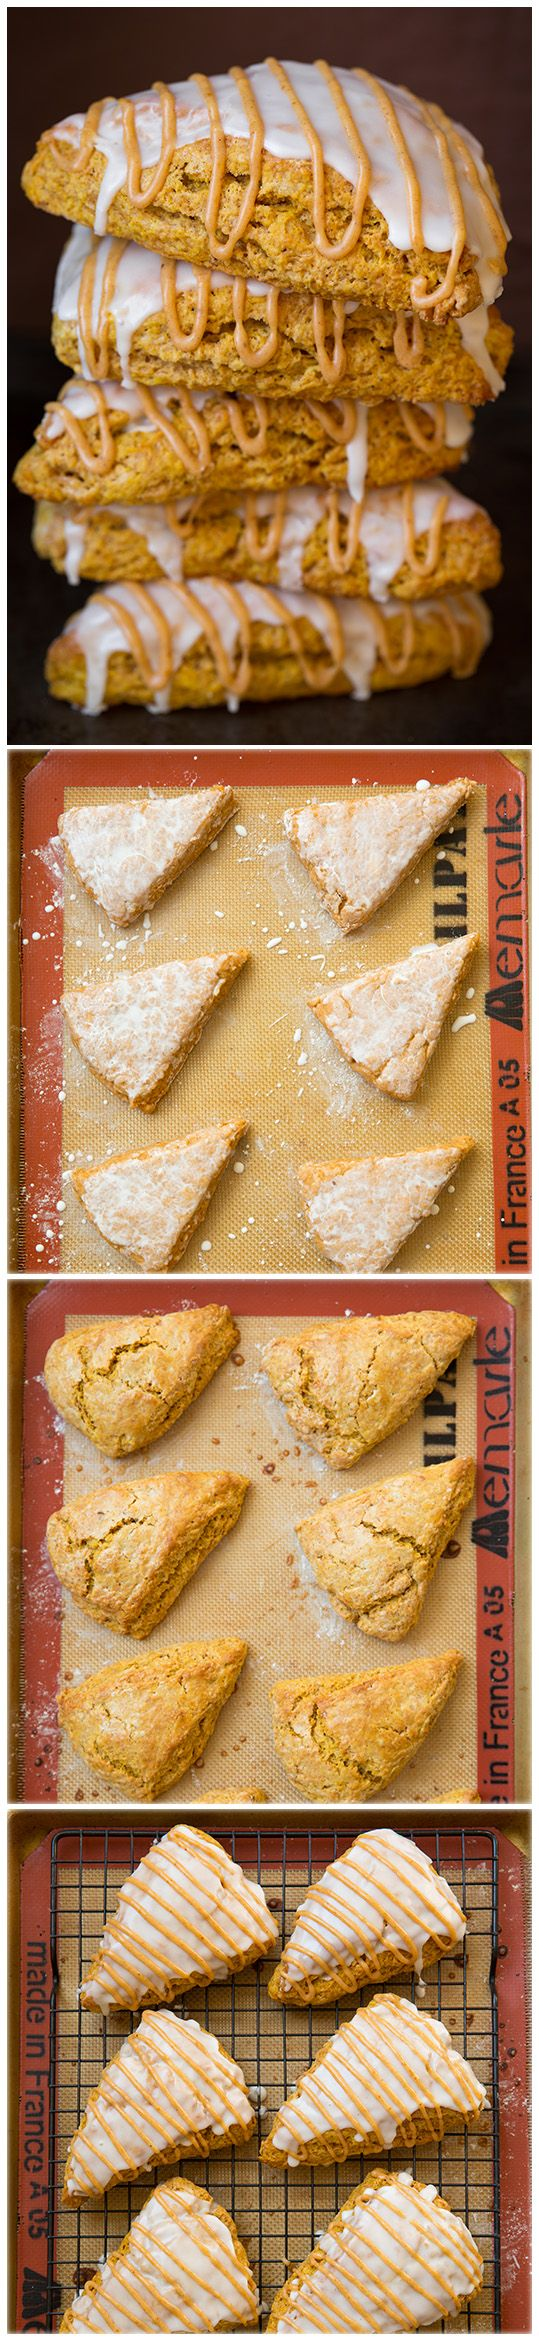 ... Pumpkin Recipes, Starbucks Copycat, Scone Recipes, Starbucks Pumpkin